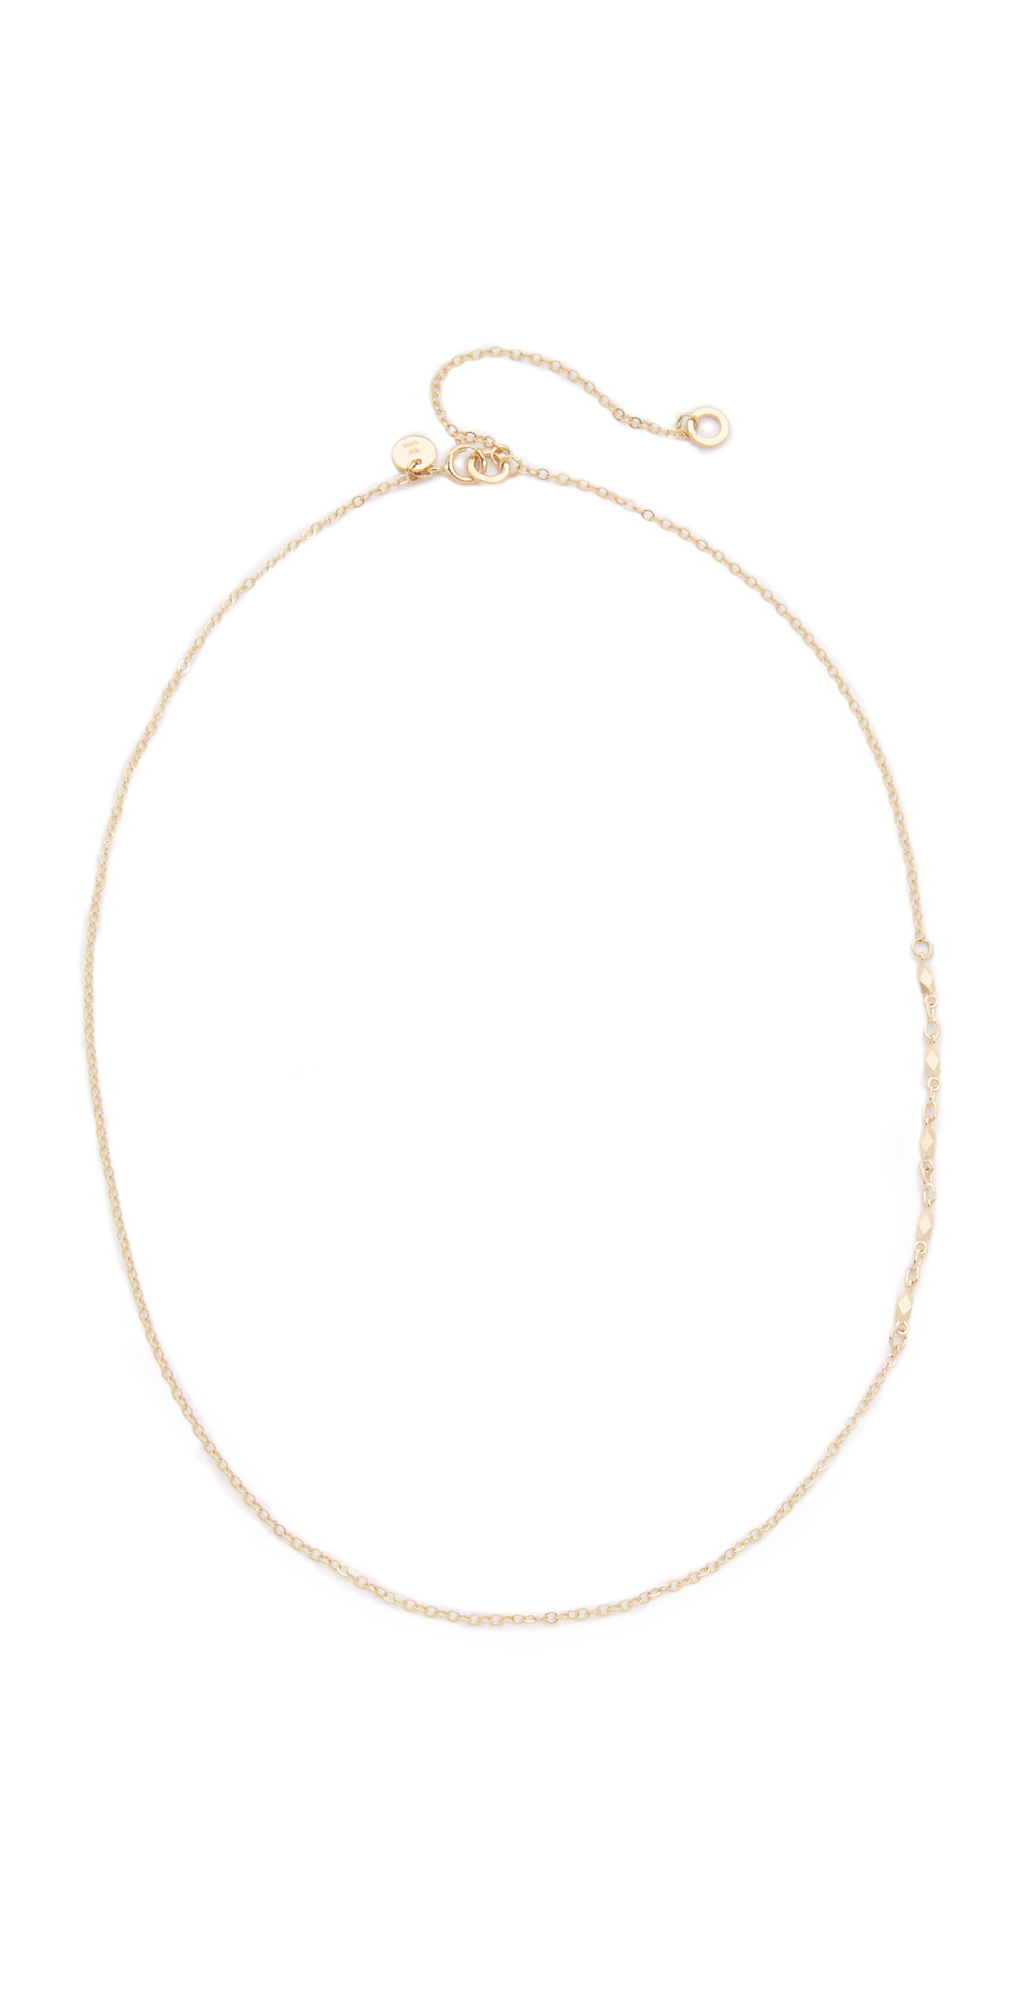 14k Gold Chain Lavalier Necklace blanca monros gomez